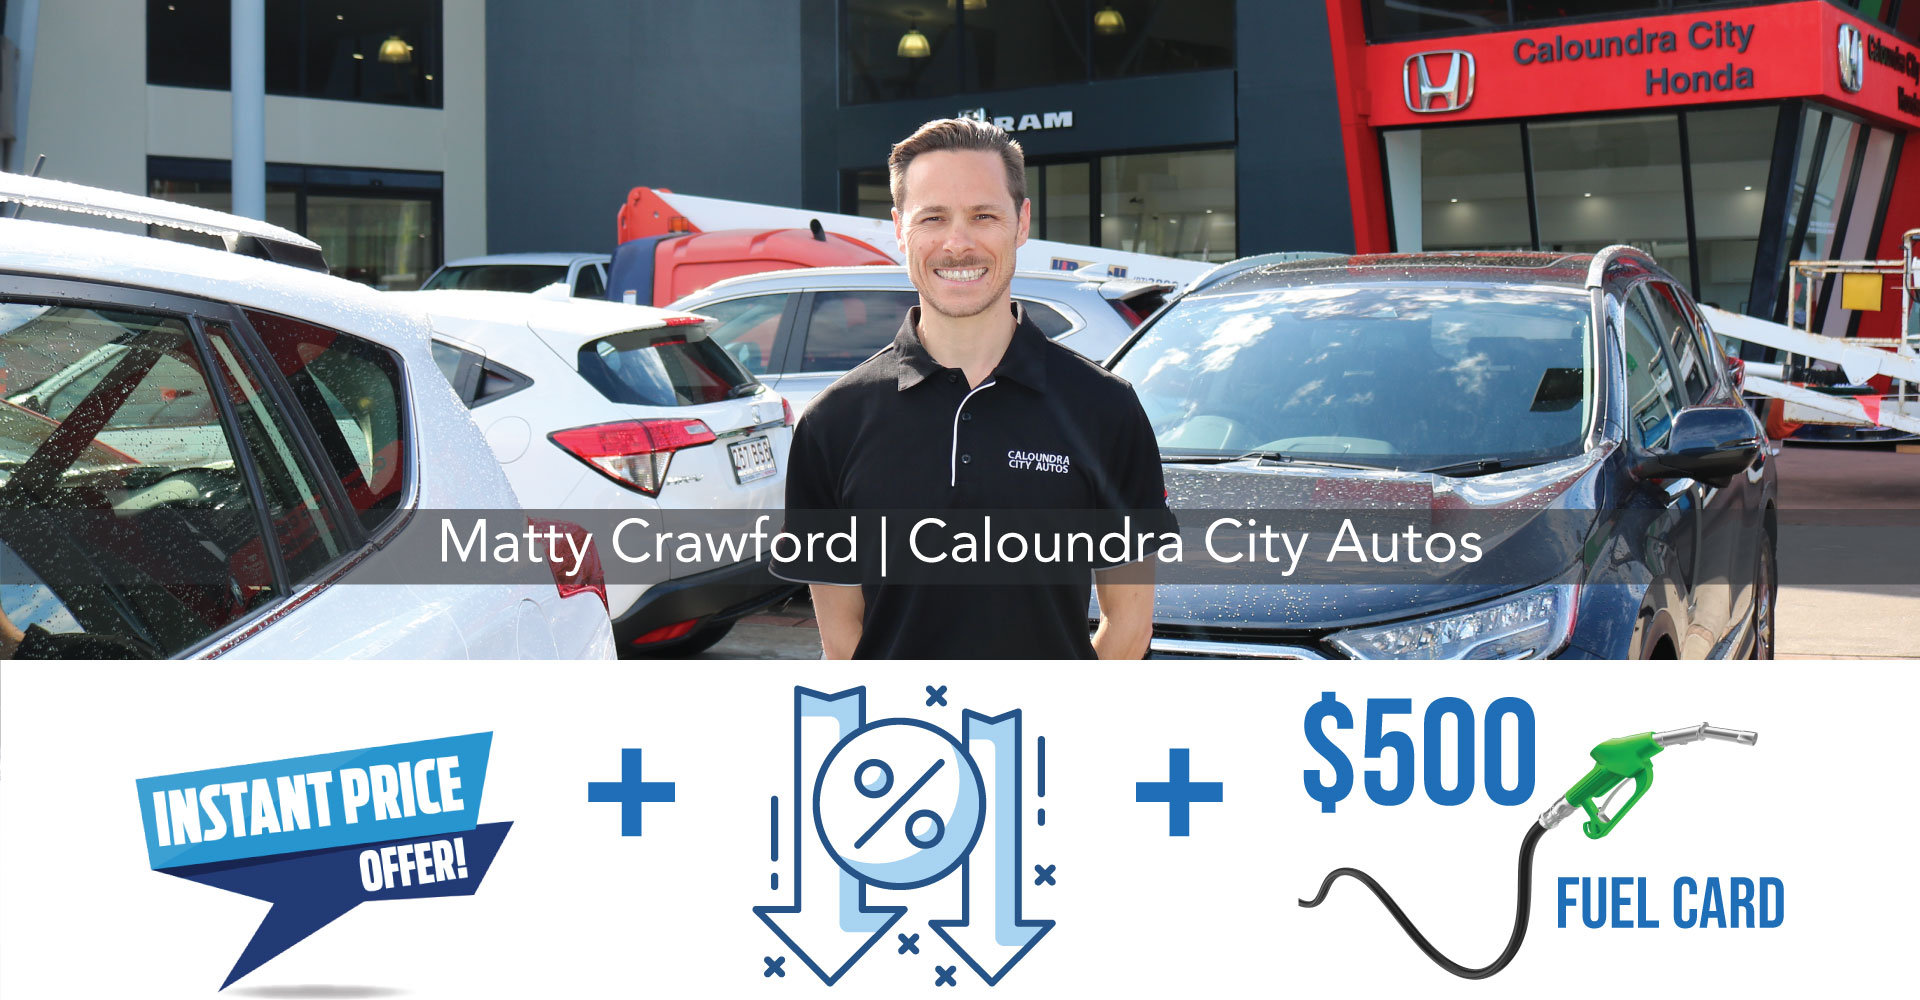 THERE'S NEVER BEEN A BETTER TIME TO FINANCE YOUR NEXT CAR WITH CALOUNDRA CITY AUTOS